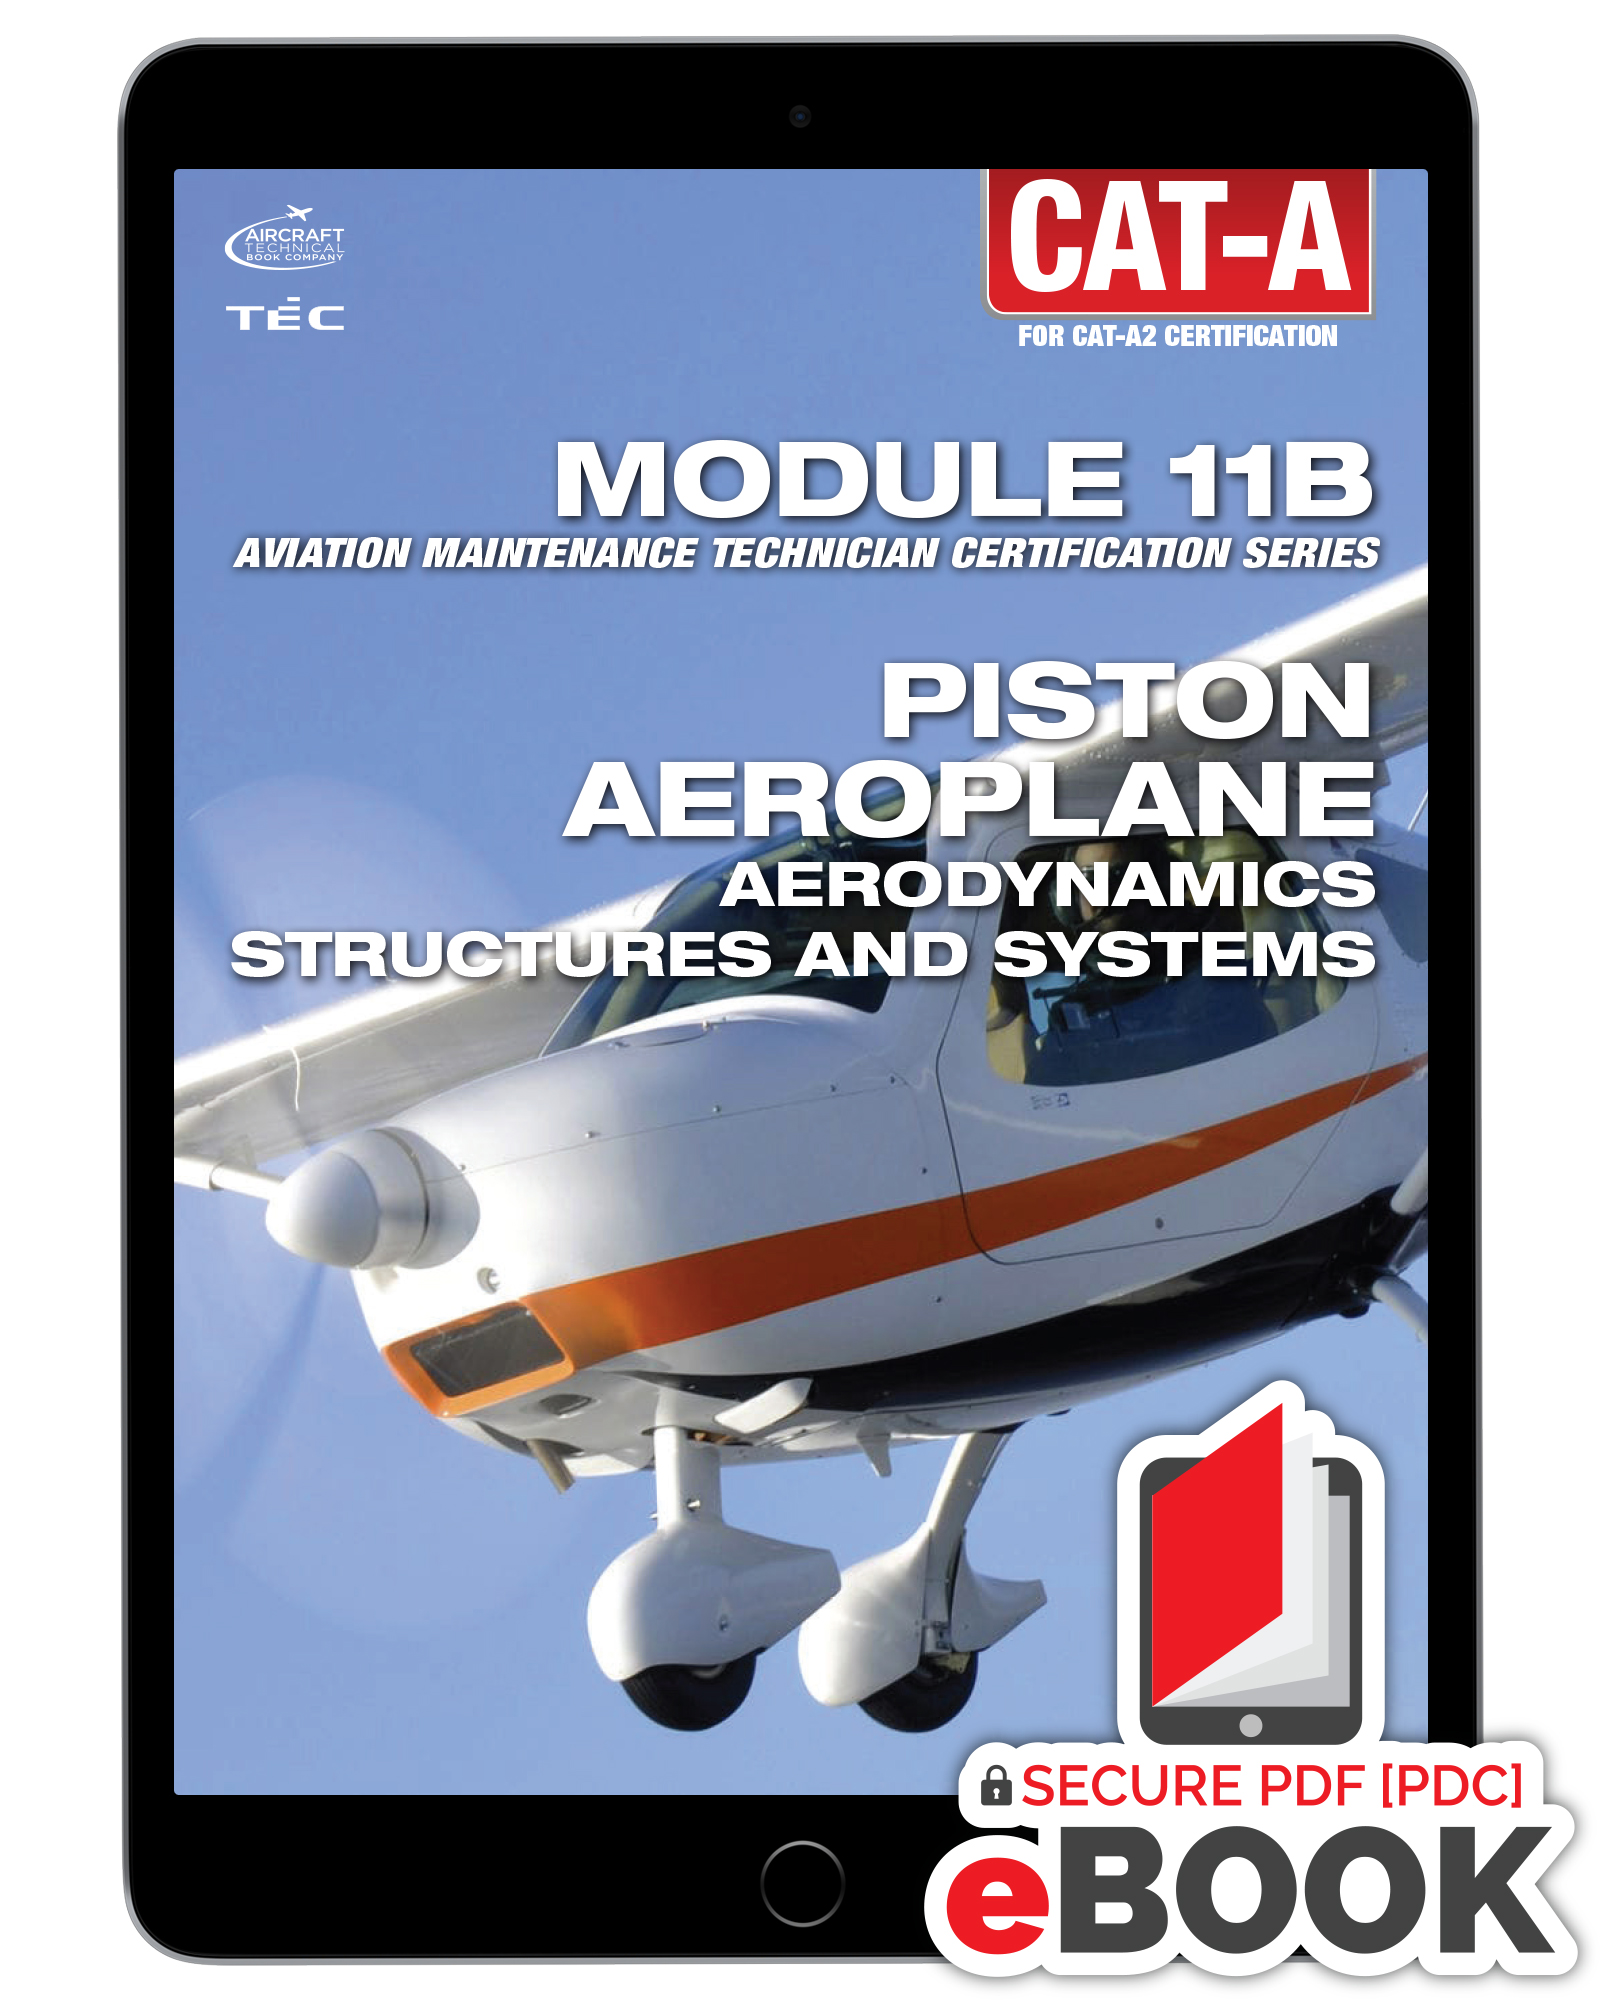 Piston Aeroplane, Structures and Systems Module 11B for CAT-A